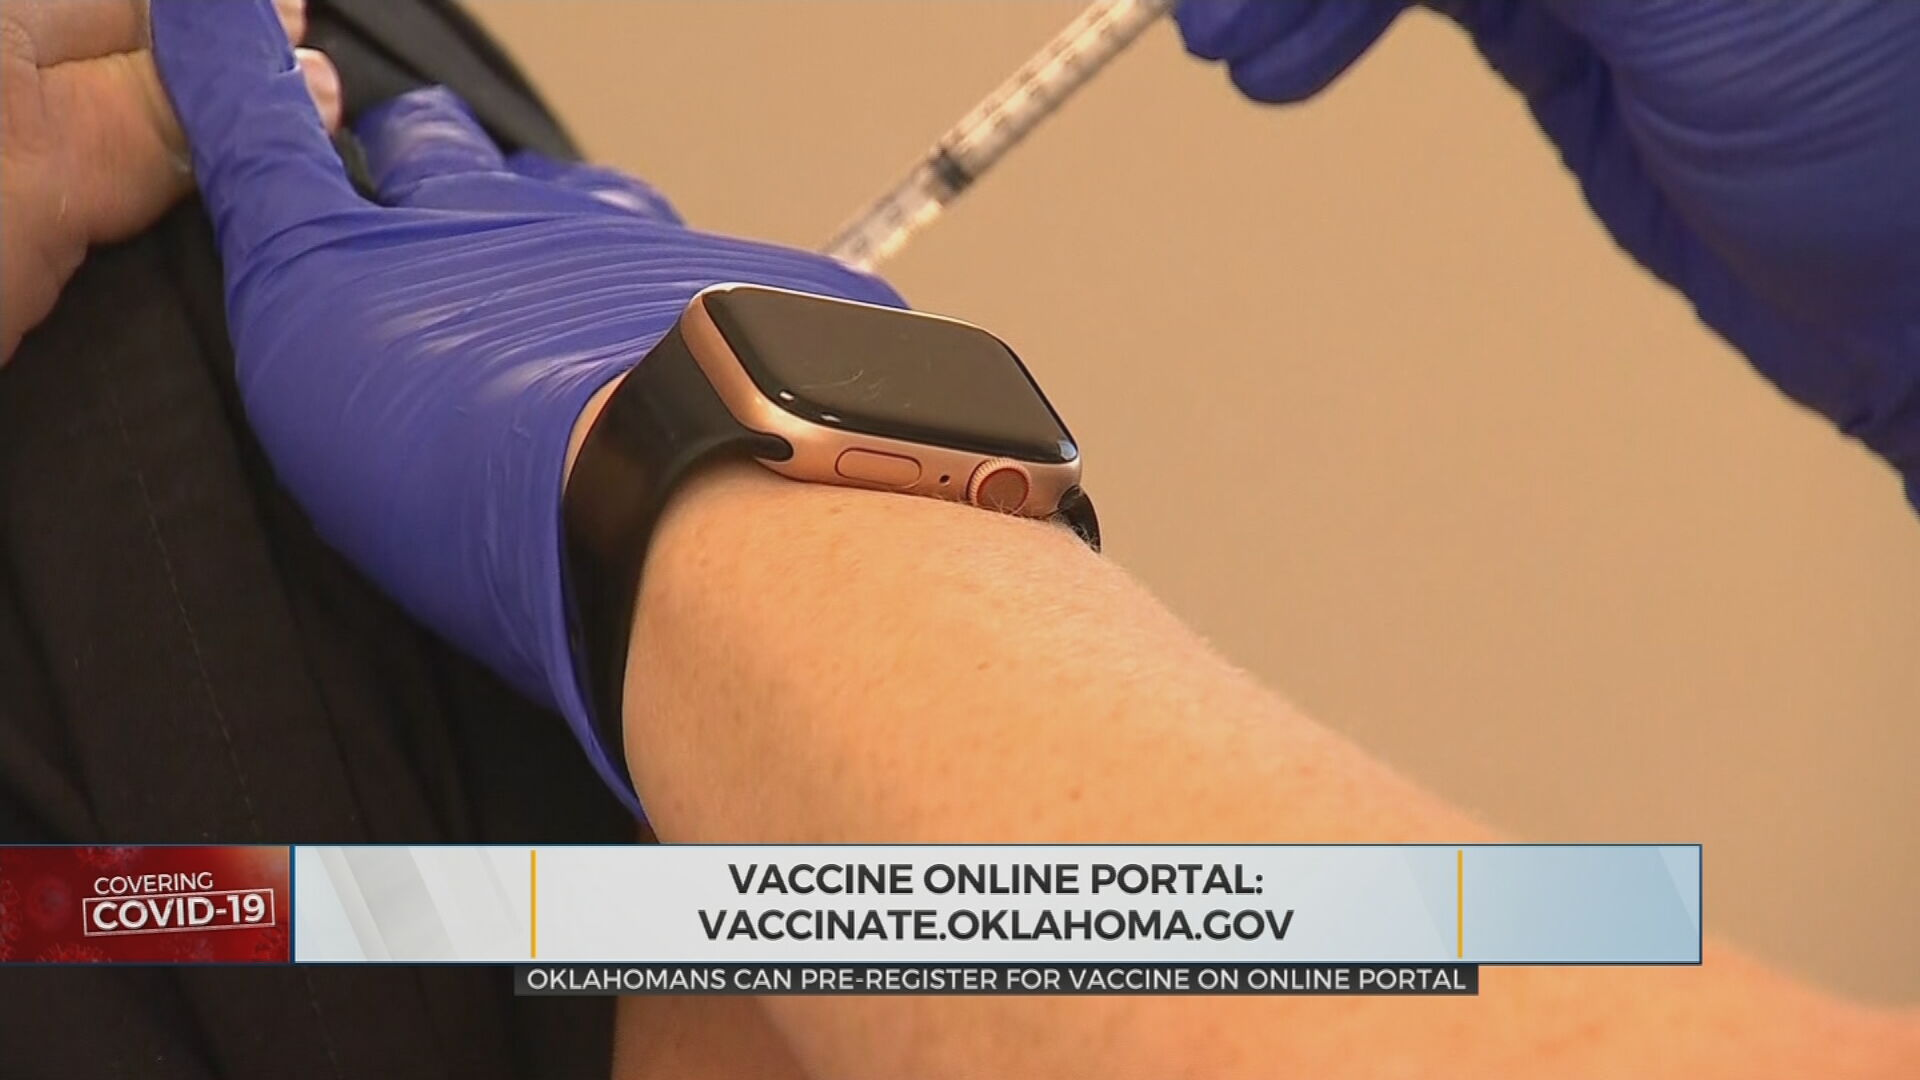 State Health Department Launches Online Portal For Registration, COVID-19 Vaccine Appointments